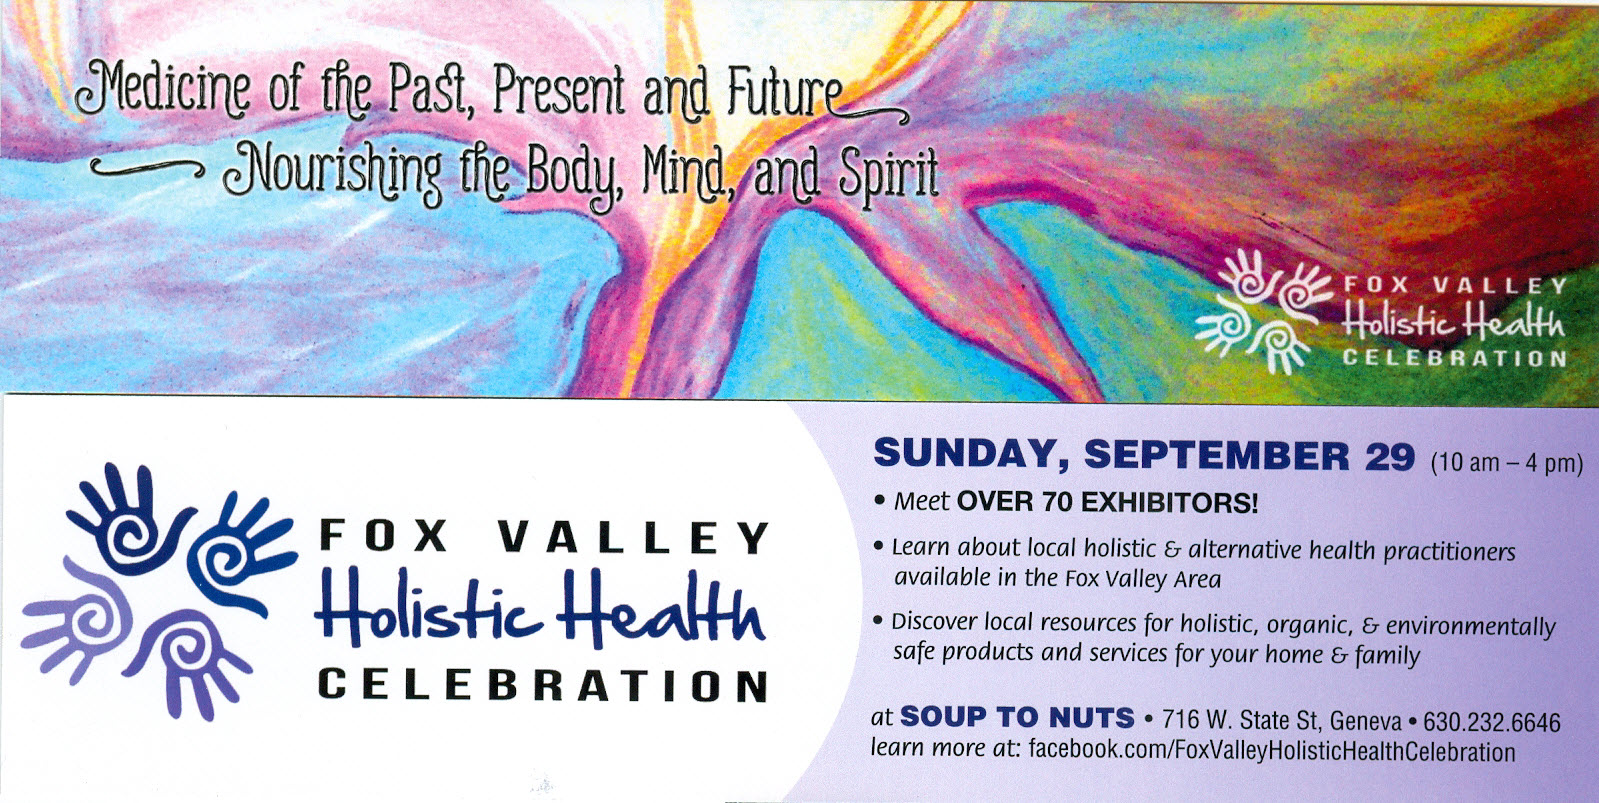 Holistic Health Celebration 2013